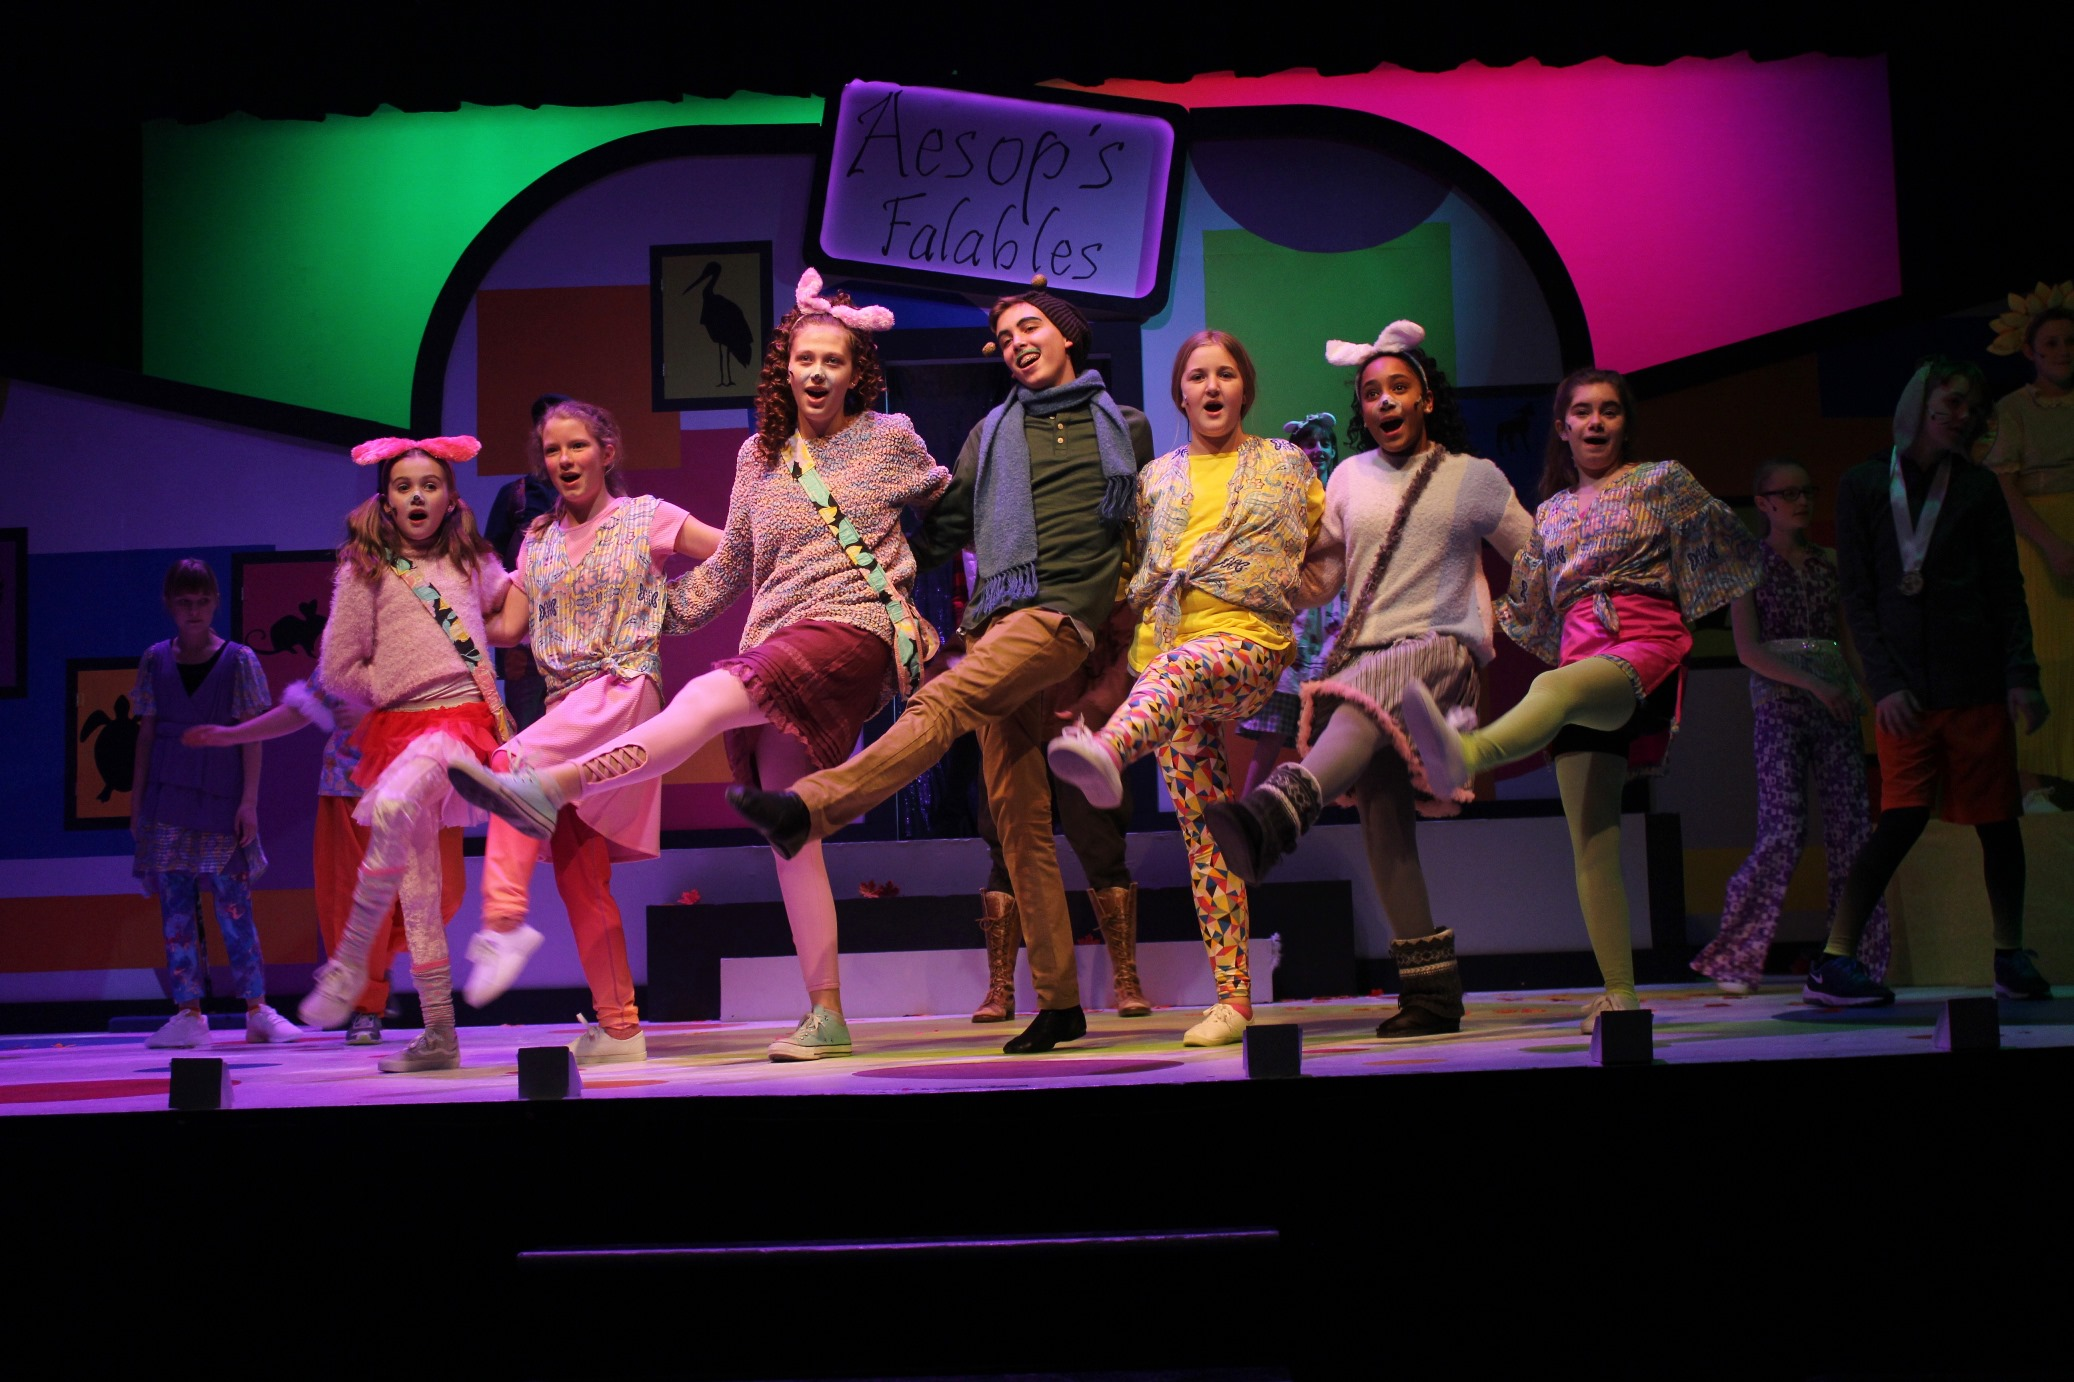 The cast does a kickline in DJT's  Aesop's Falables